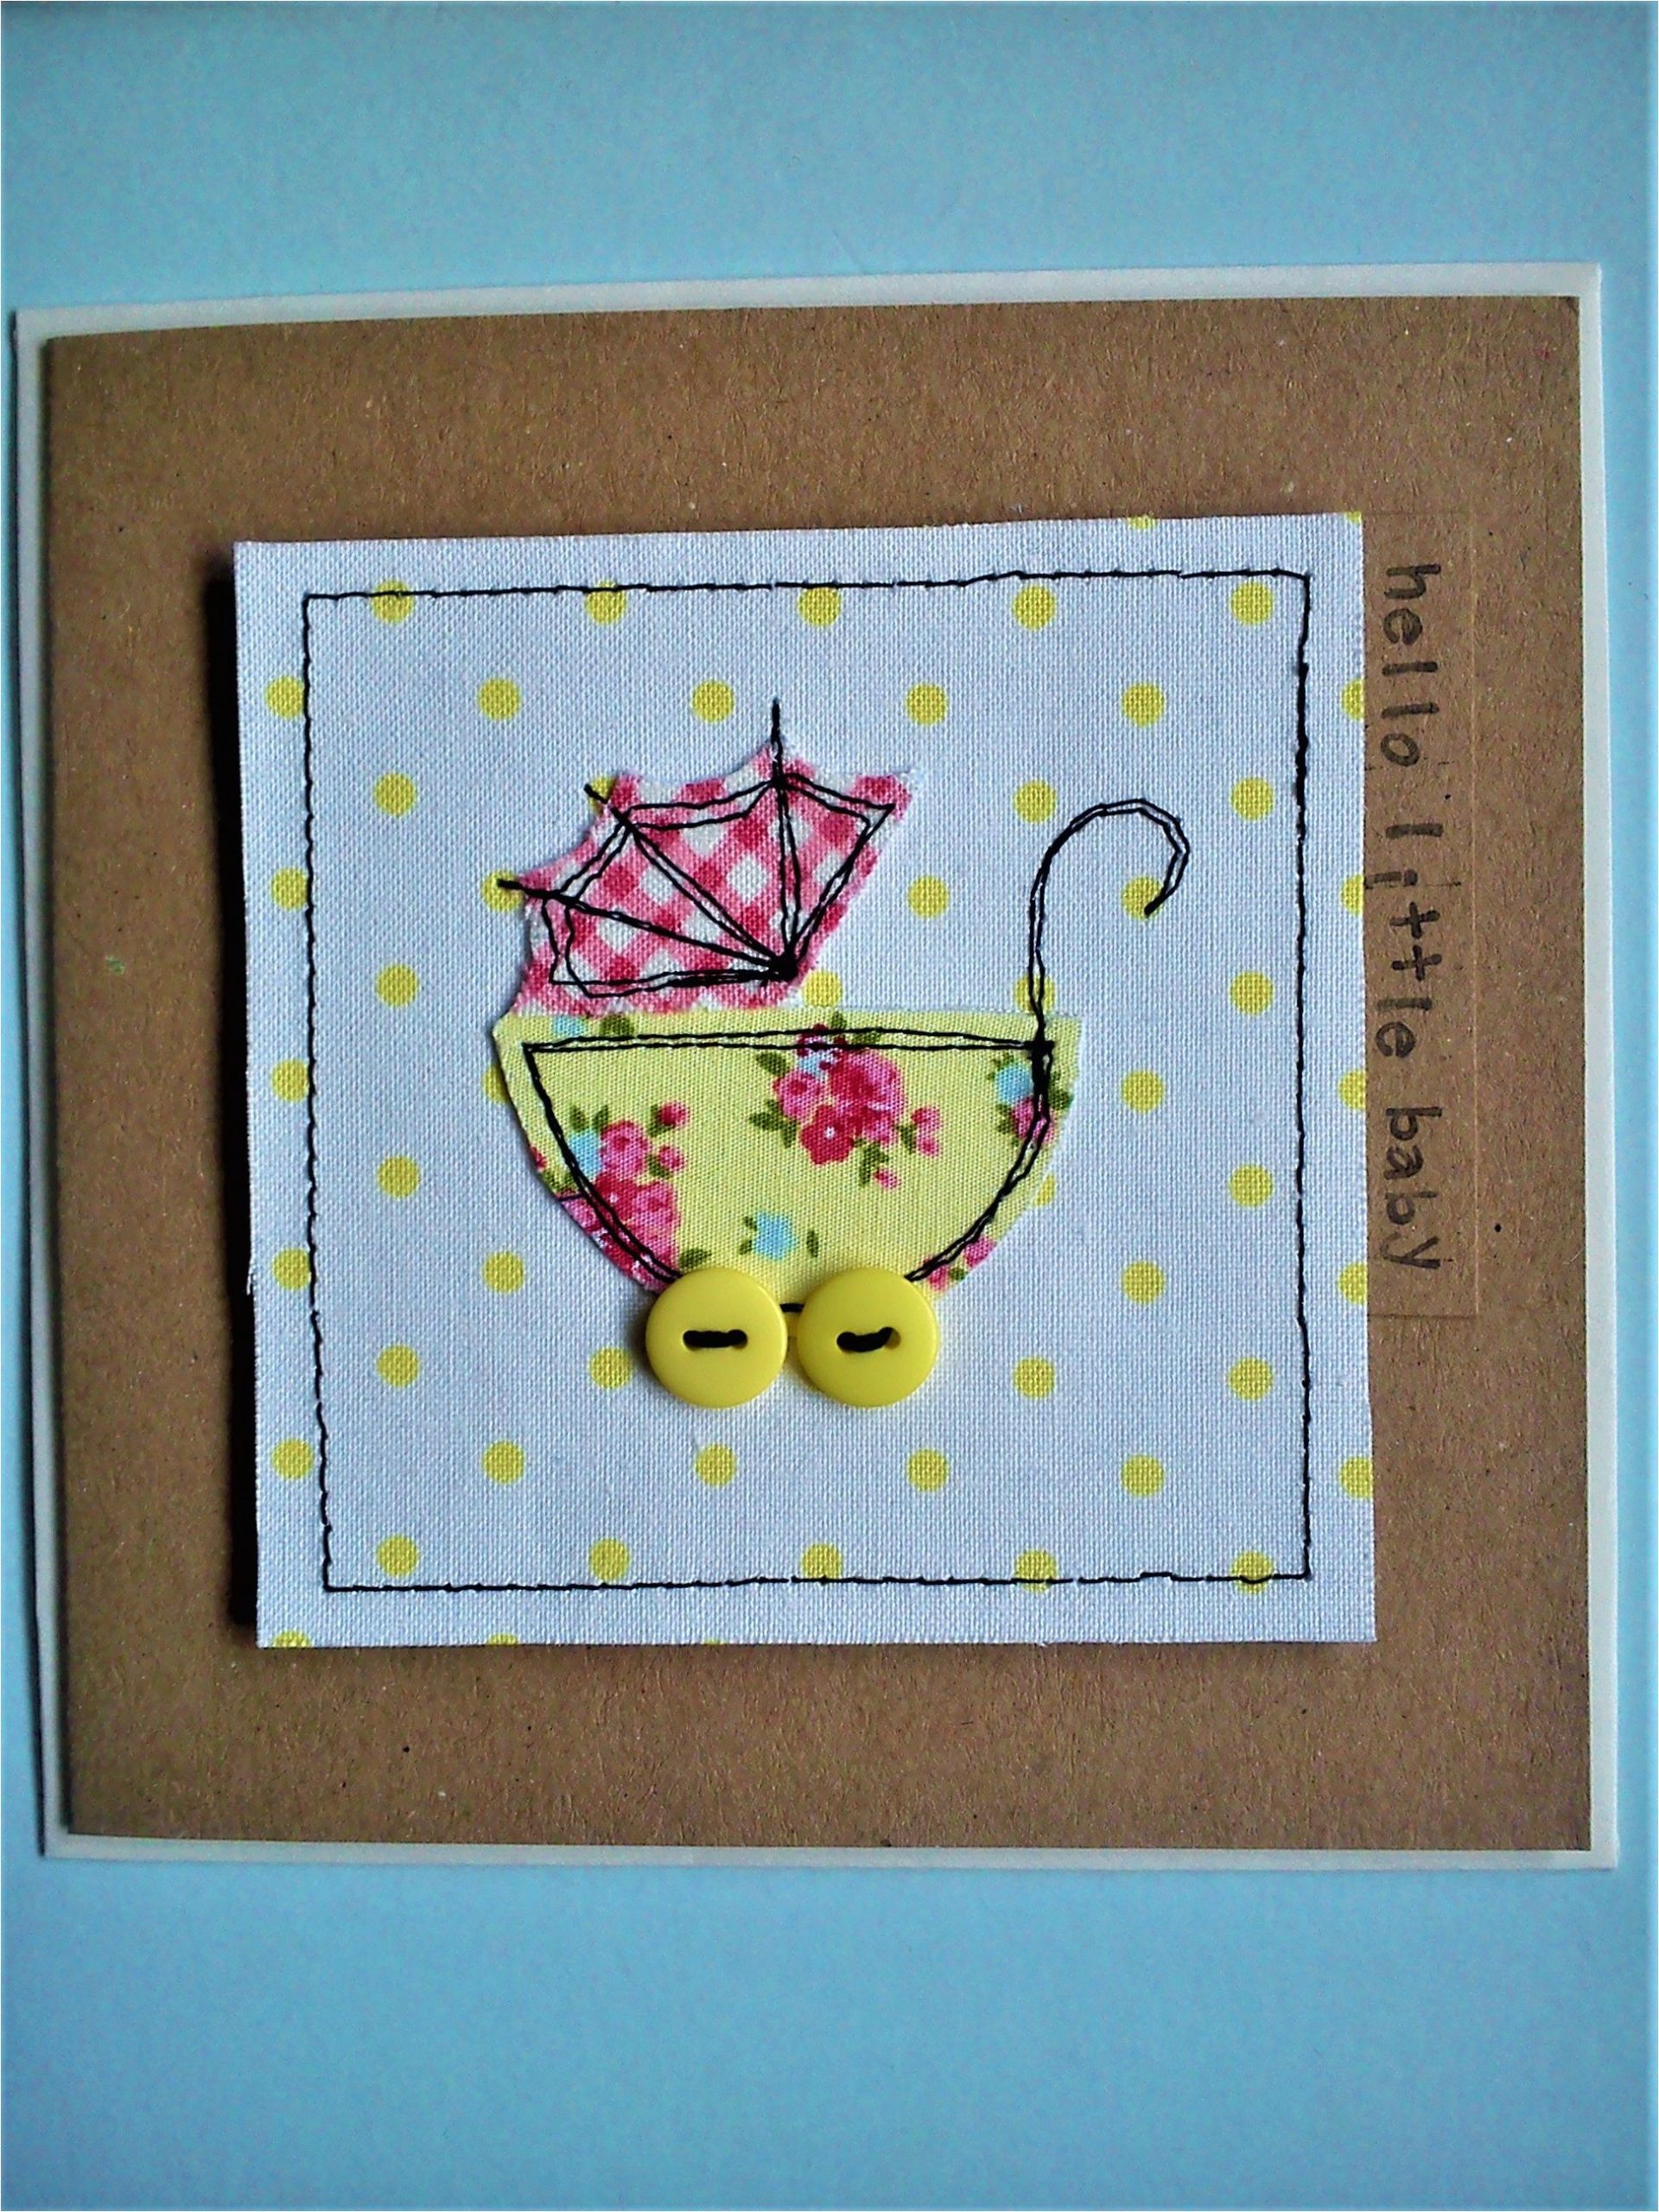 Unique New Baby Card Congrats Handmade Sewn New Baby Card Made with Pretty Fabrics and